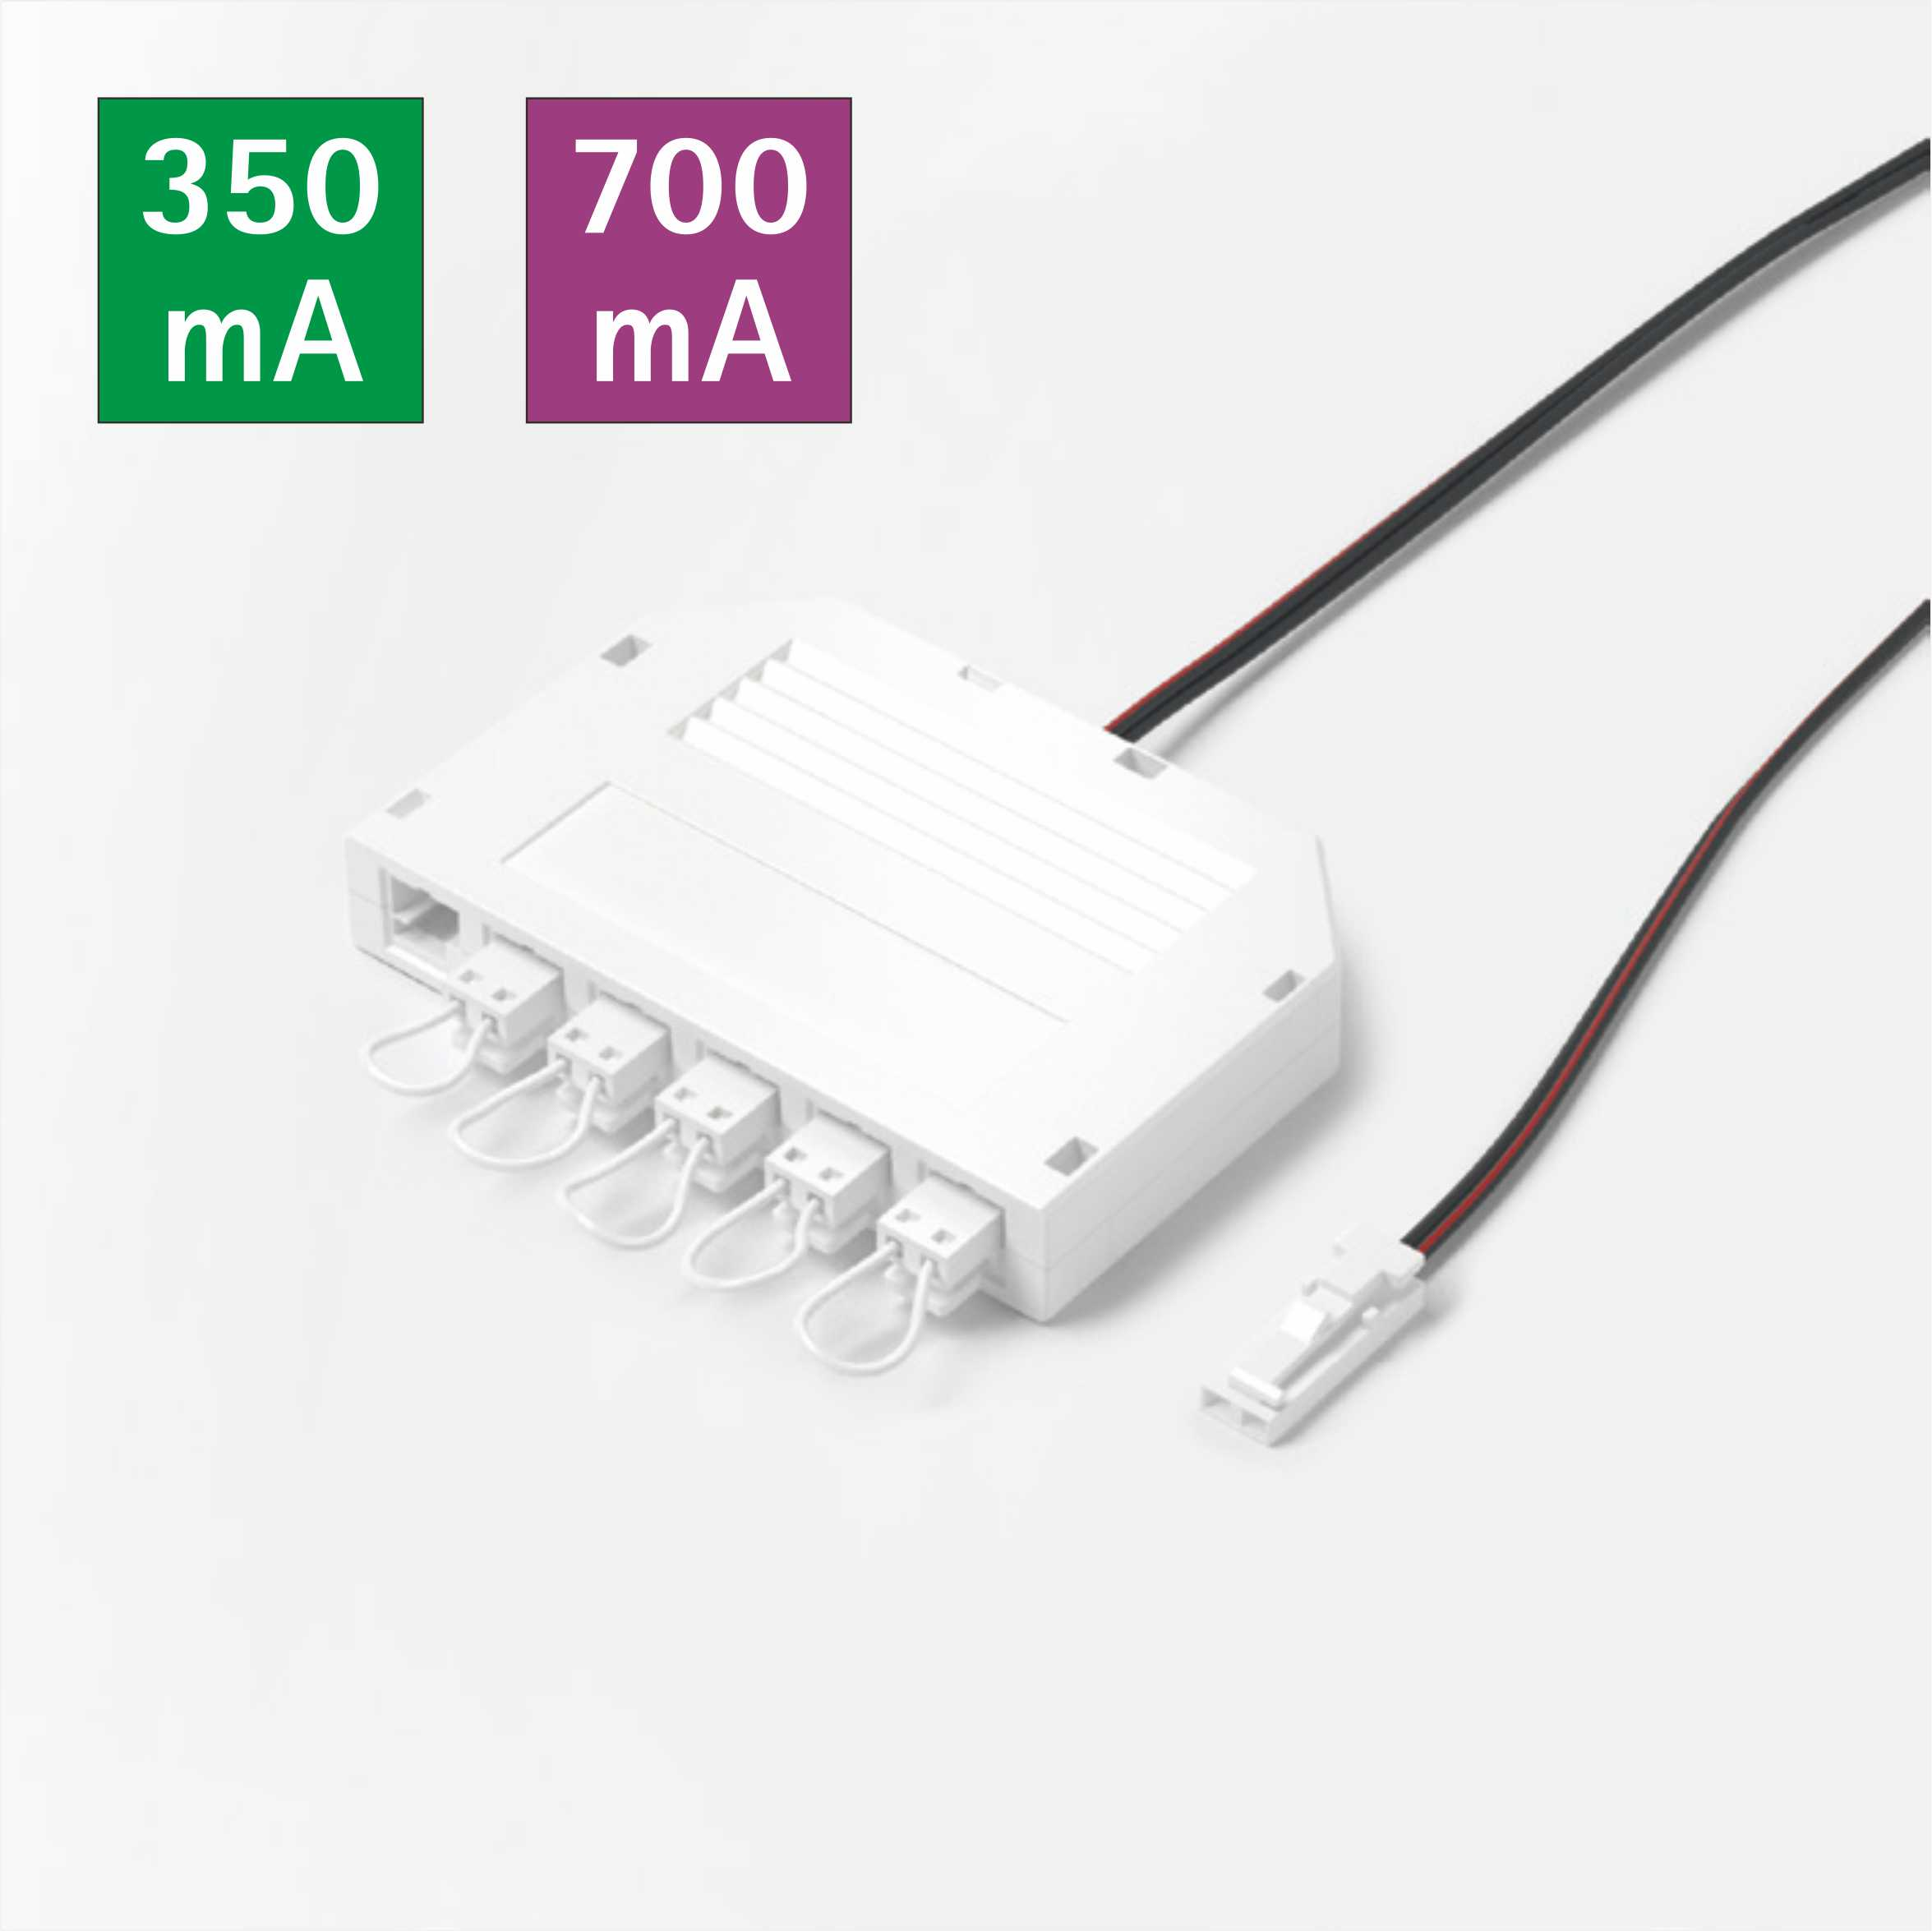 350mA/700mA LED Mini 6-Way Distributor for Constant Current Lightings 9518.061